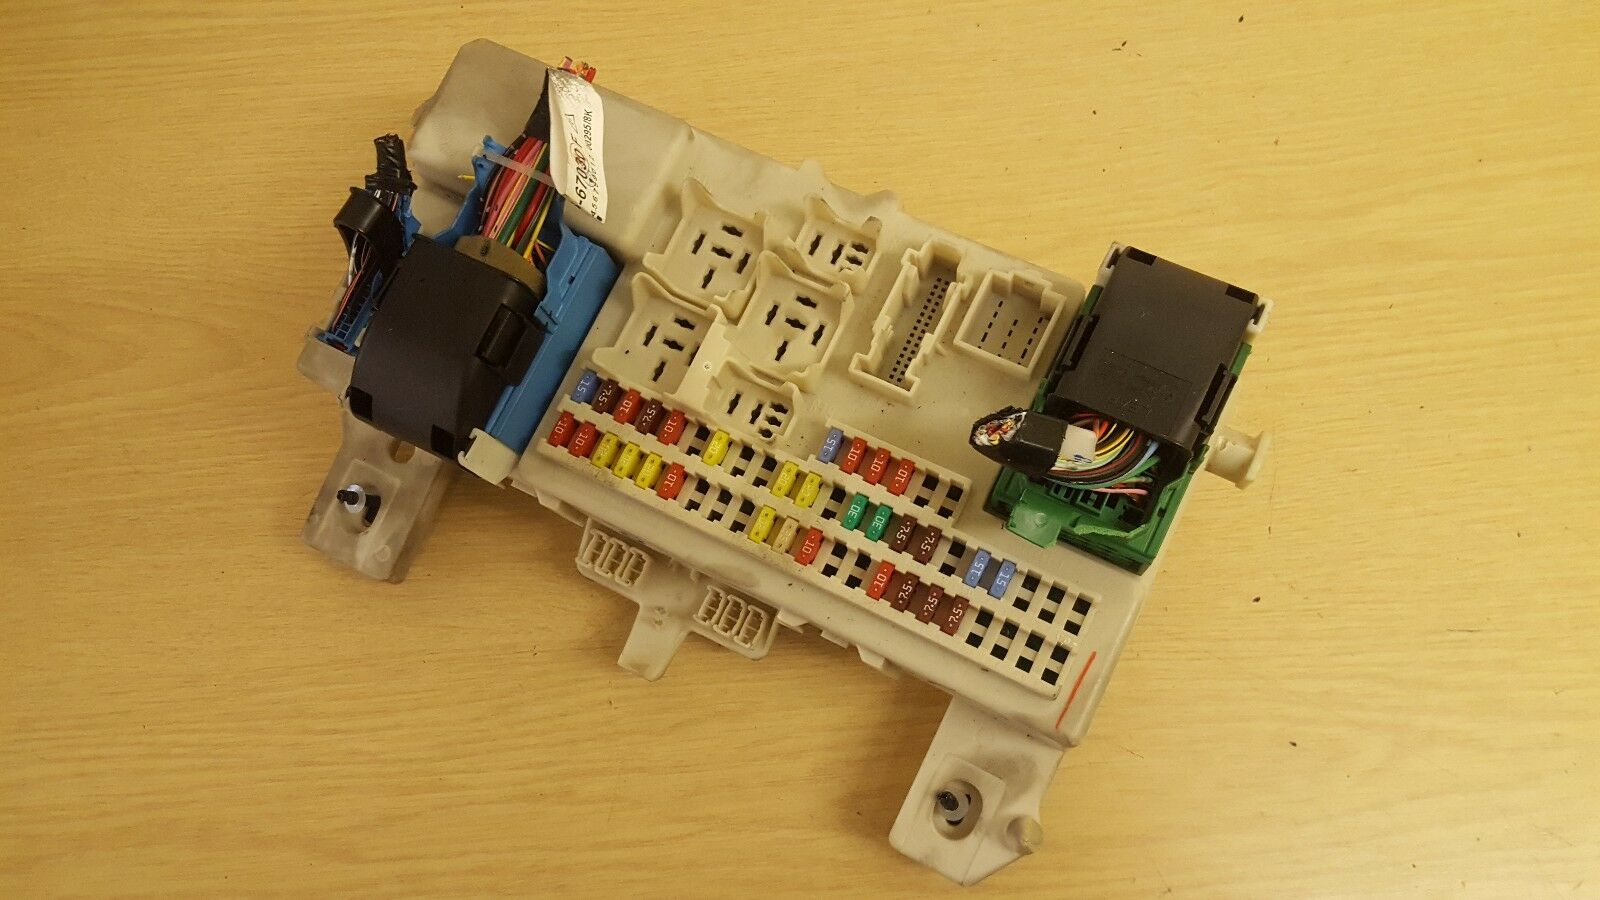 Mazda 3 Fuse Box Relay Comfort Control Module Unit Bcm Bs4h66730e 2005 Saab 9 2x 1 Of 3only Available